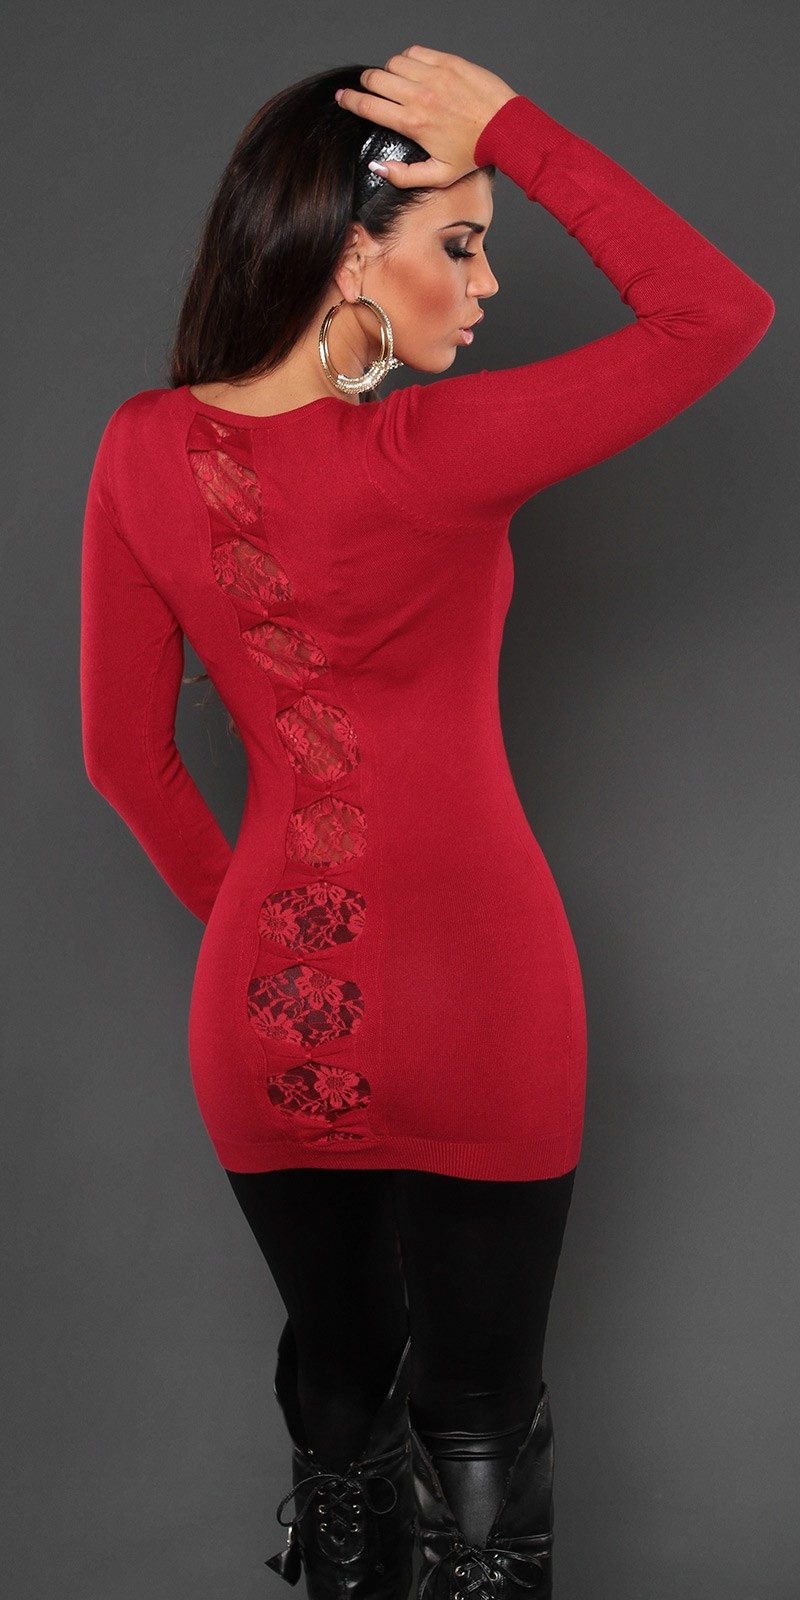 Sexy KouCla longsweater with lace and bows Red